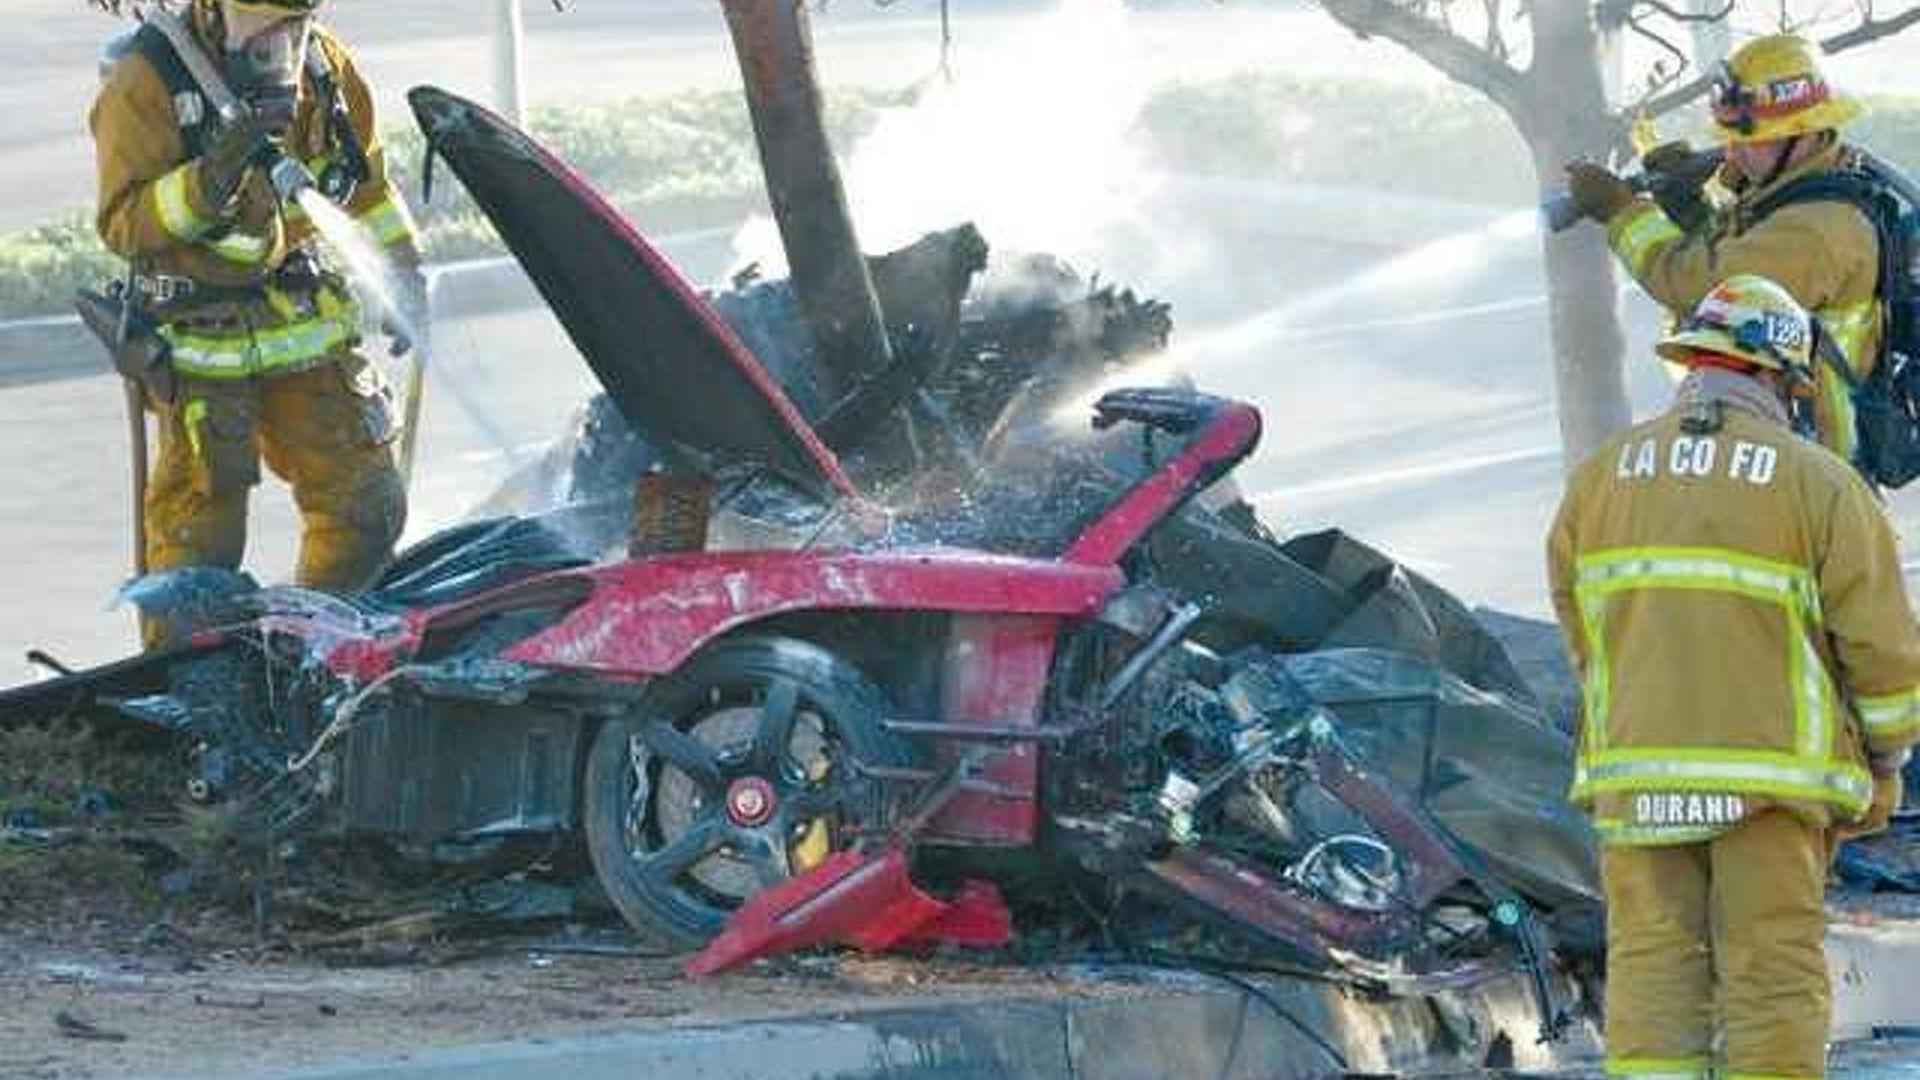 Porsche blames Roger Rodas for fatal Porsche Carrera GT accident